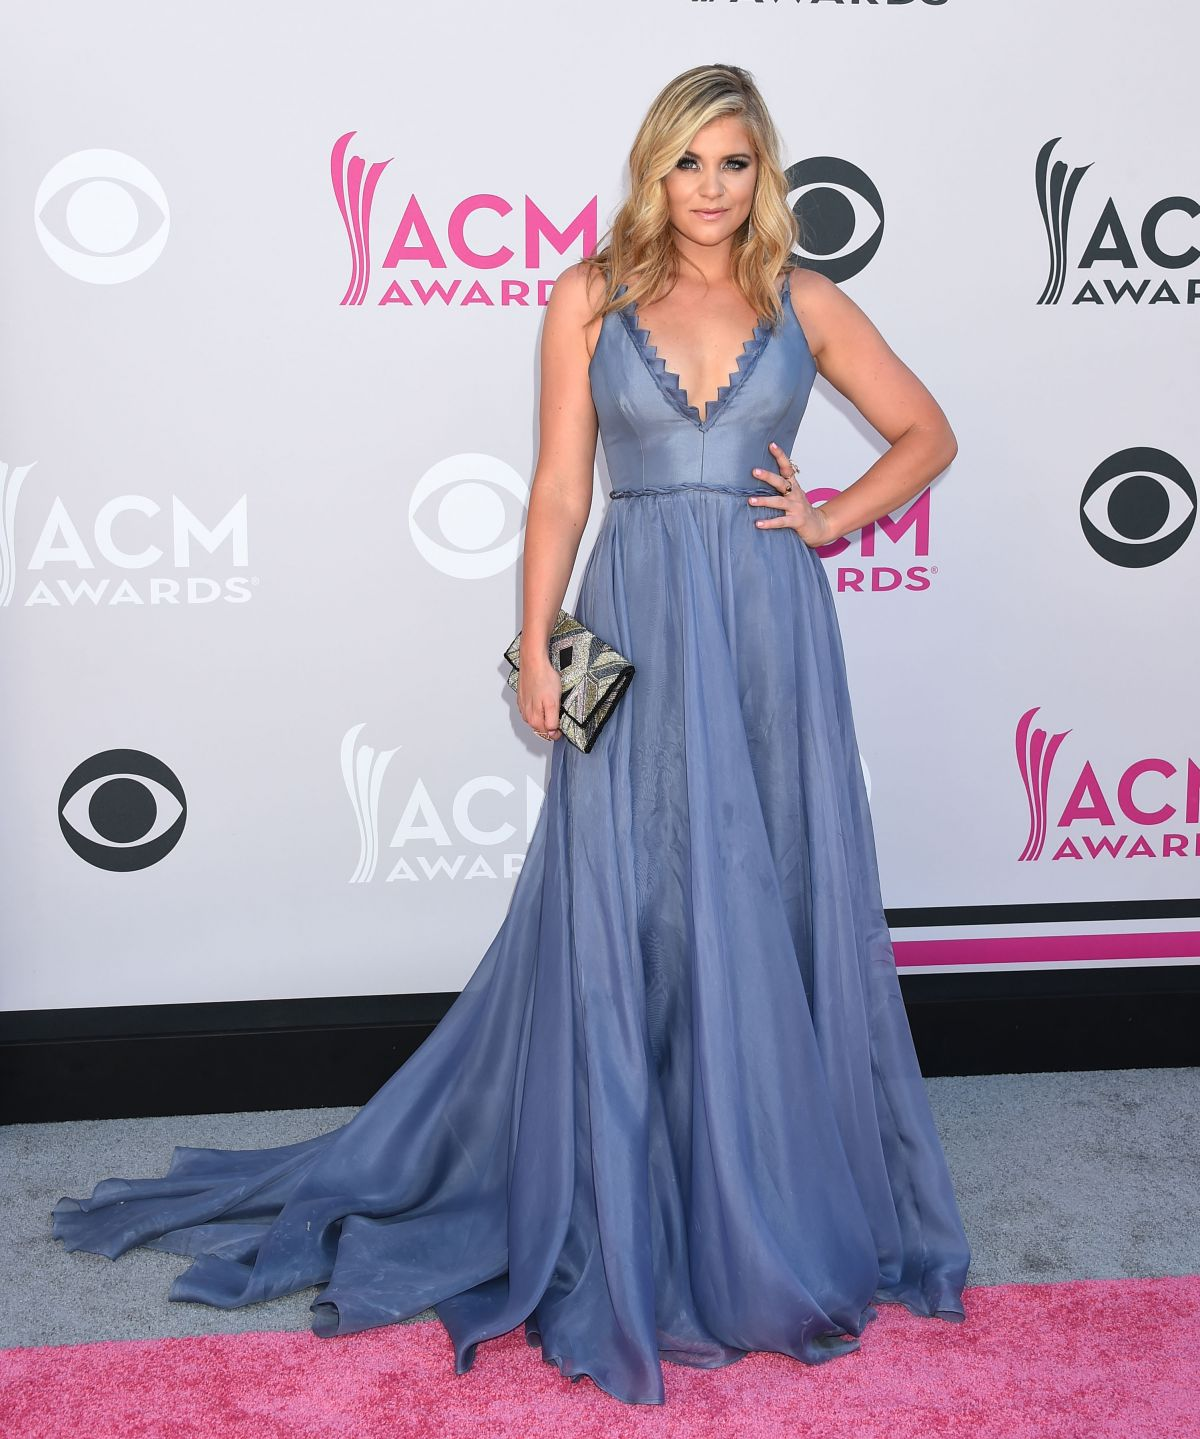 LAUREN ALAINA at 2017 Academy of Country Music Awards in Las Vegas 04/02/2017